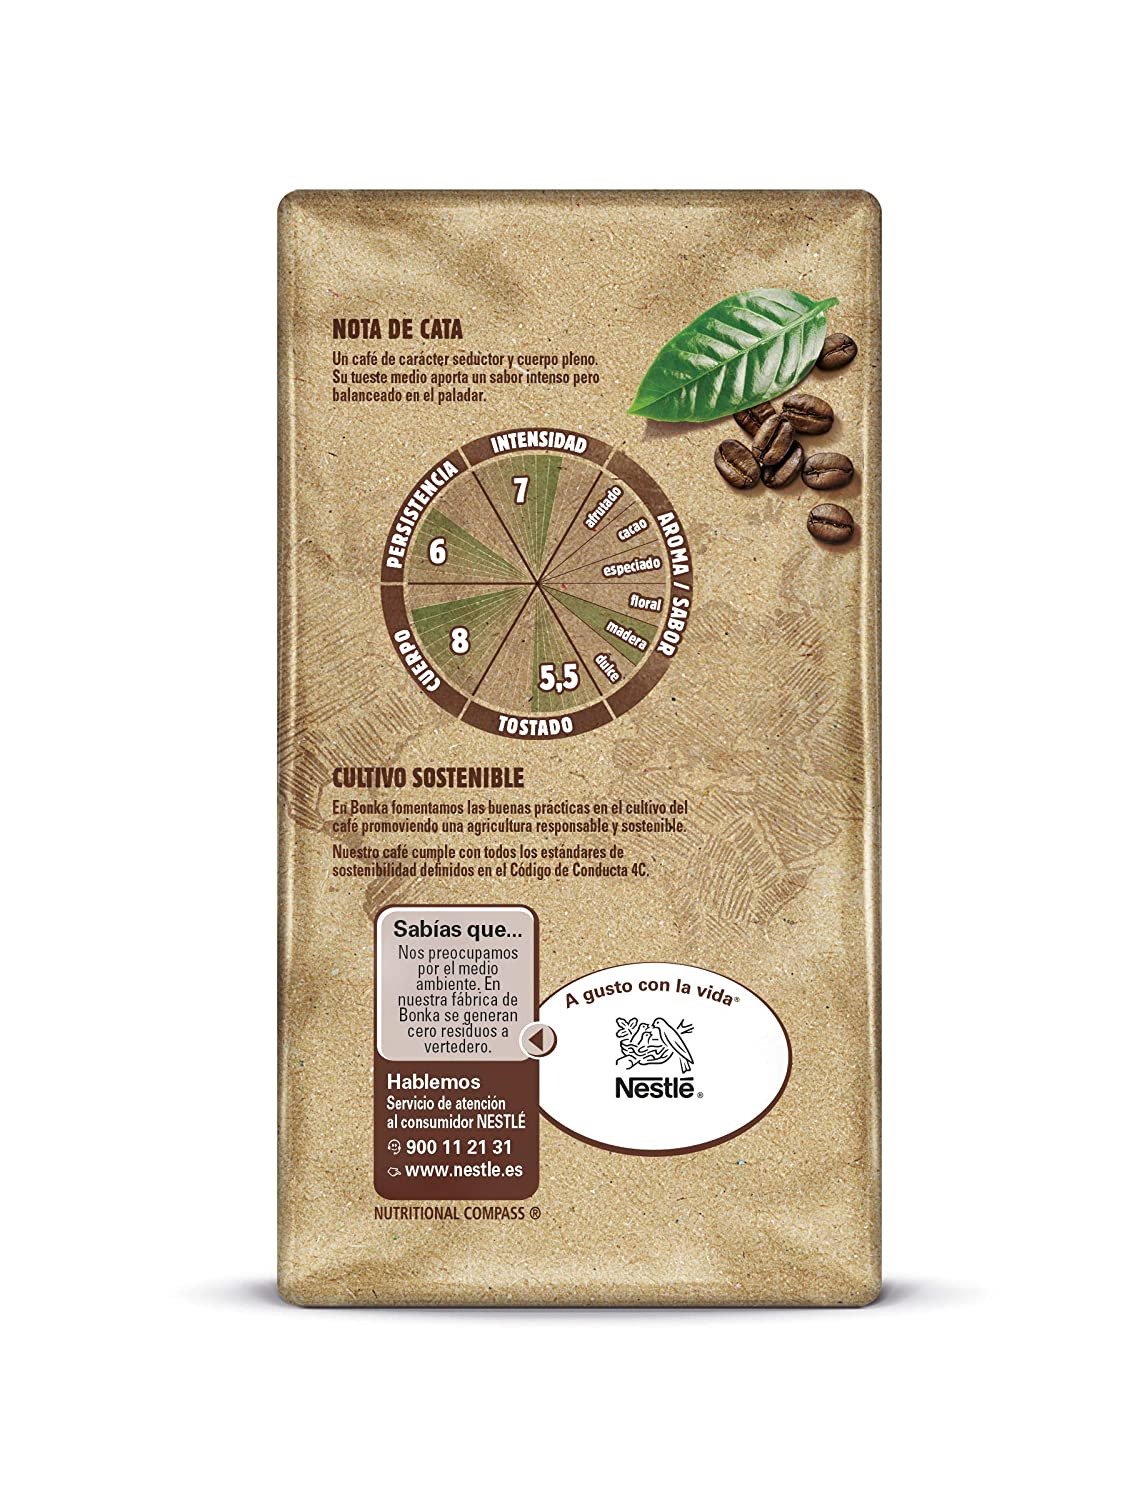 Bonka Café molido de tueste natural y cultivo sostenible: Amazon.es: Amazon Pantry